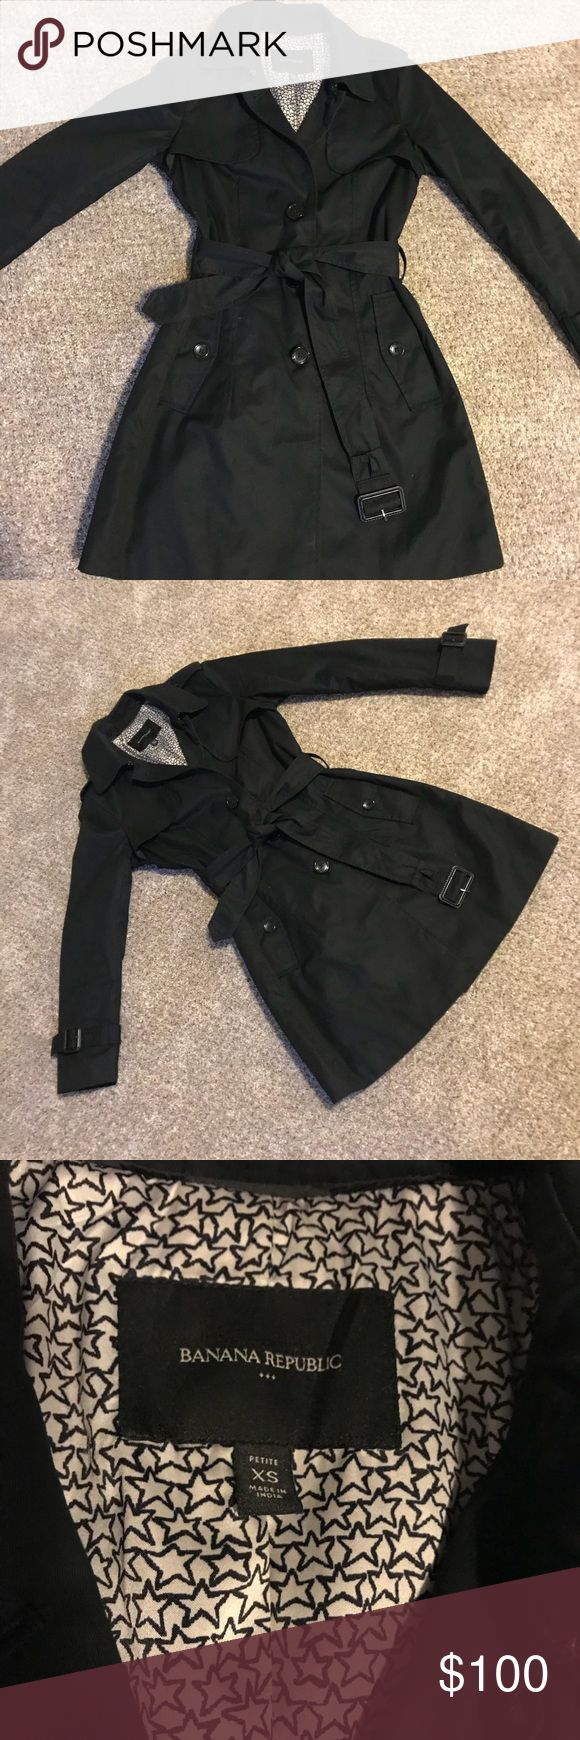 EUC black trench coat from Banana Republic Excellent used condition, only worn a few times. Black trench coat with front buttons, belt at waist, pockets. Banana Republic Jackets & Coats Trench Coats